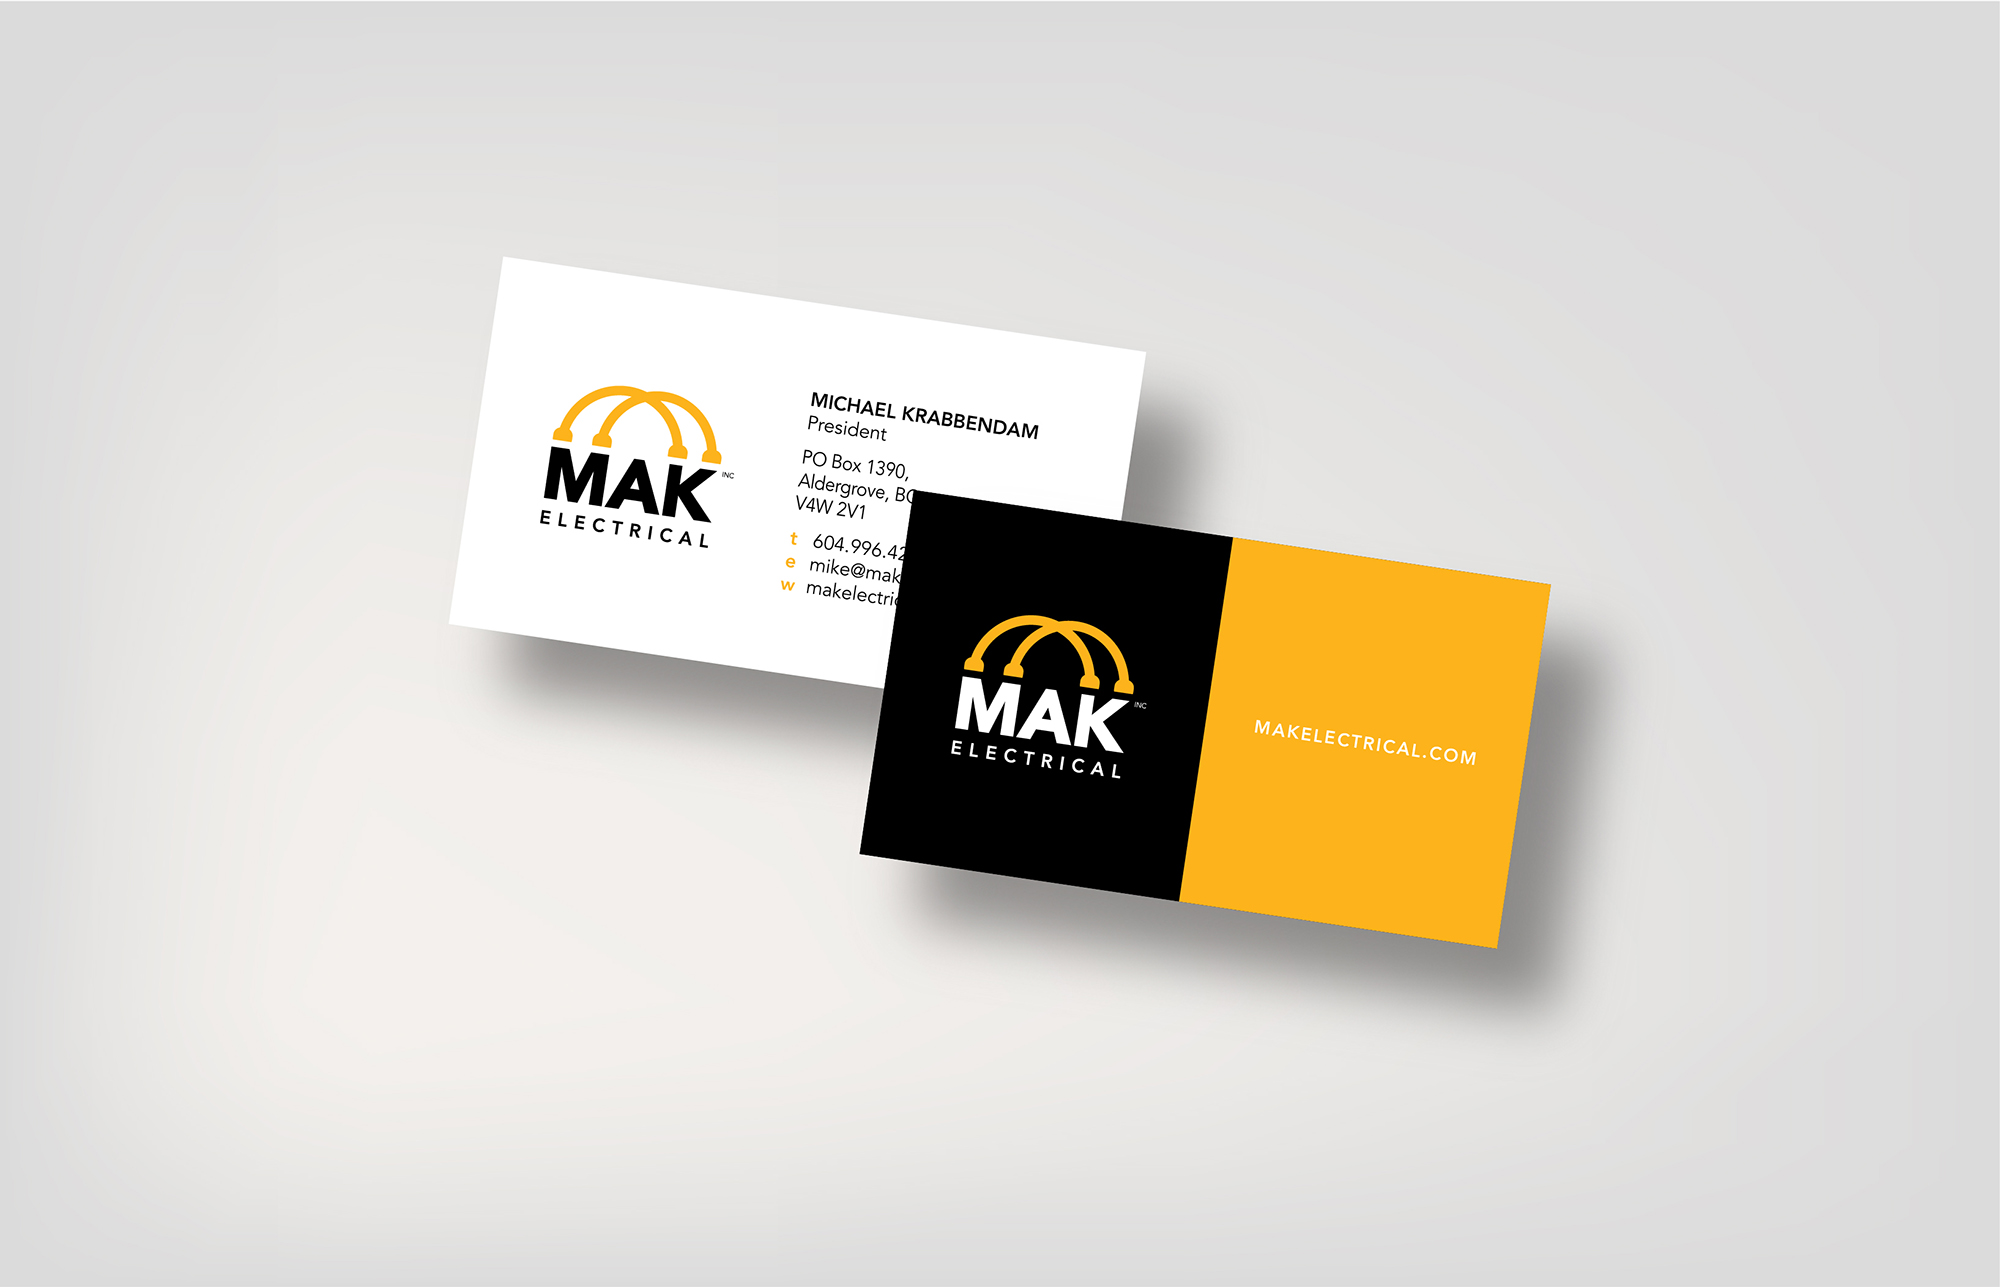 MAK_Electrical_Business_Card.jpg